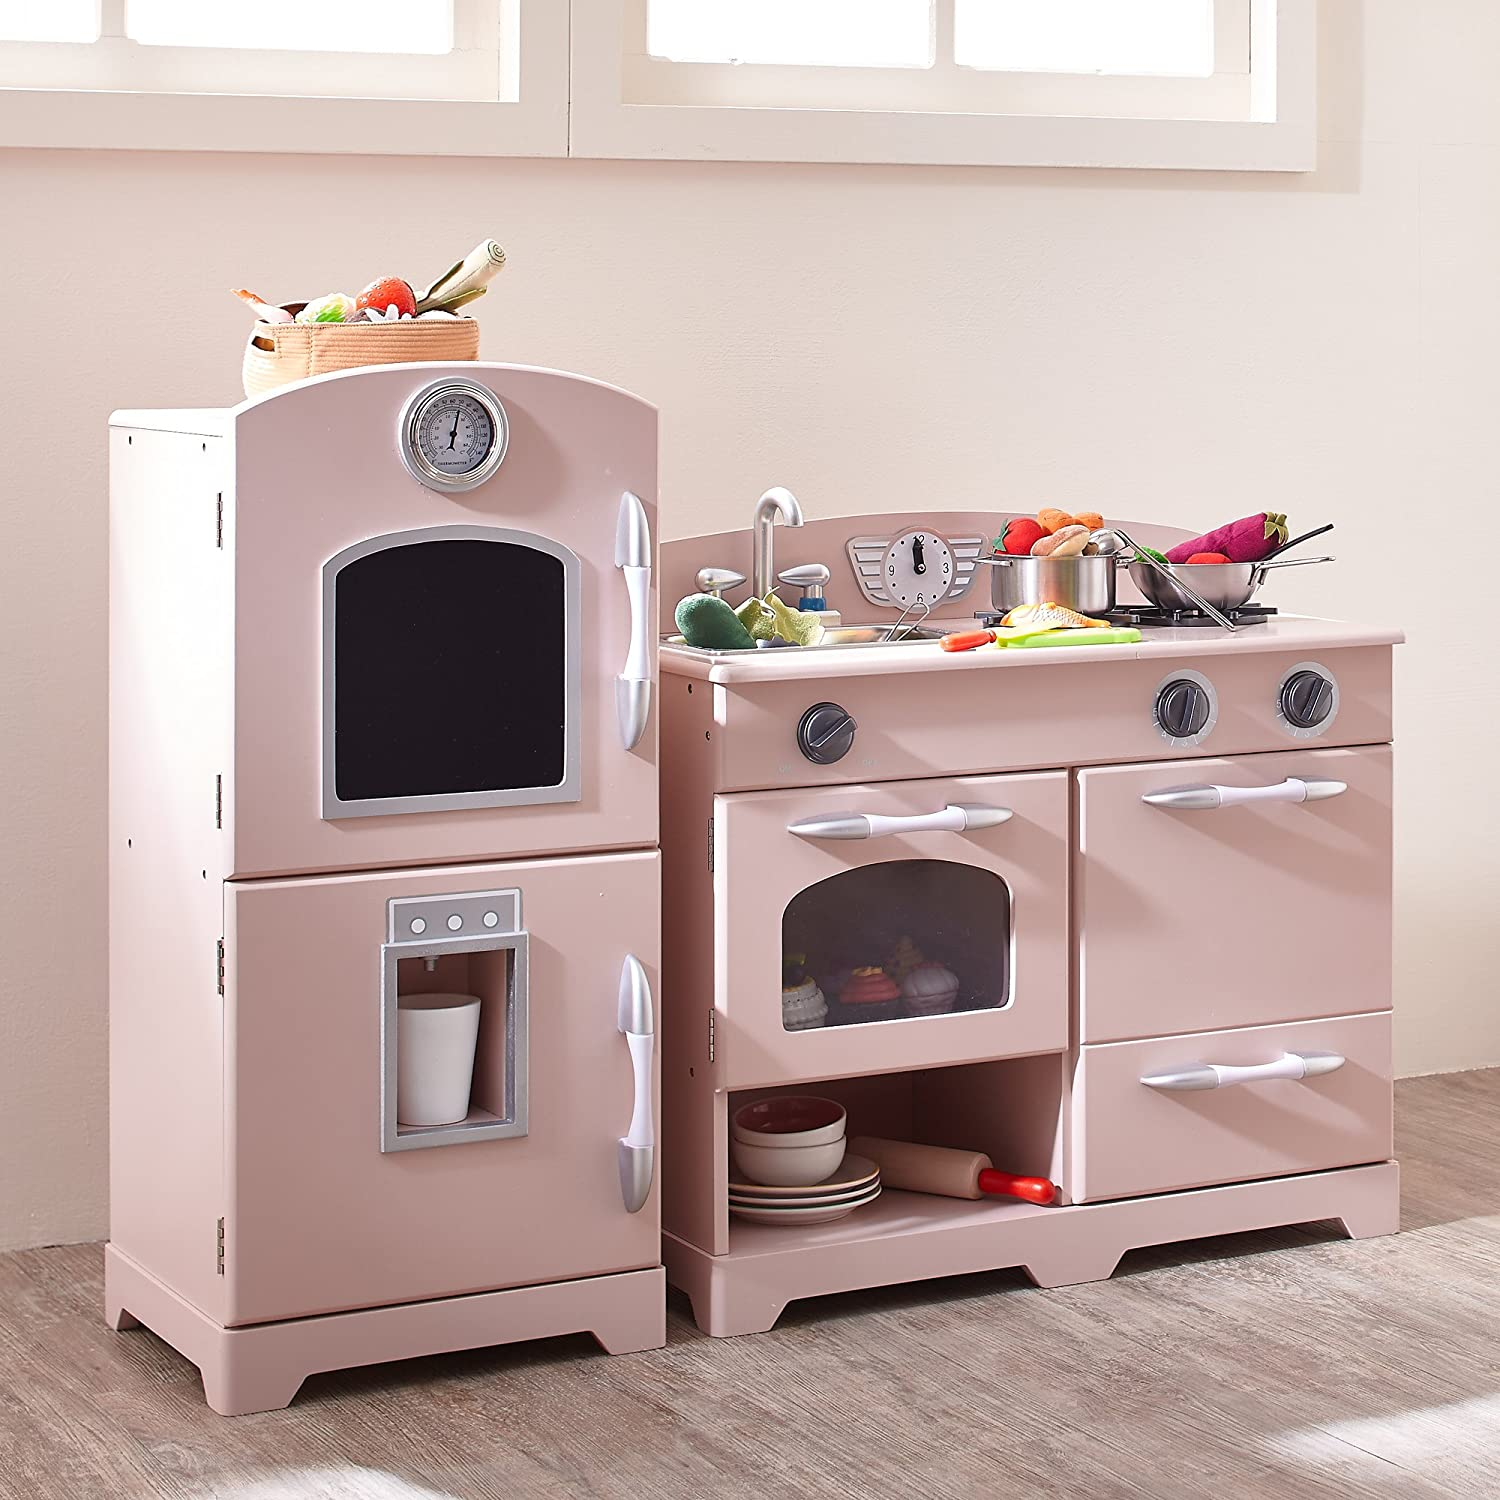 Amazon com teamson kids retro wooden play kitchen with refrigerator freezer oven and dishwasher pink 2 pieces toys games